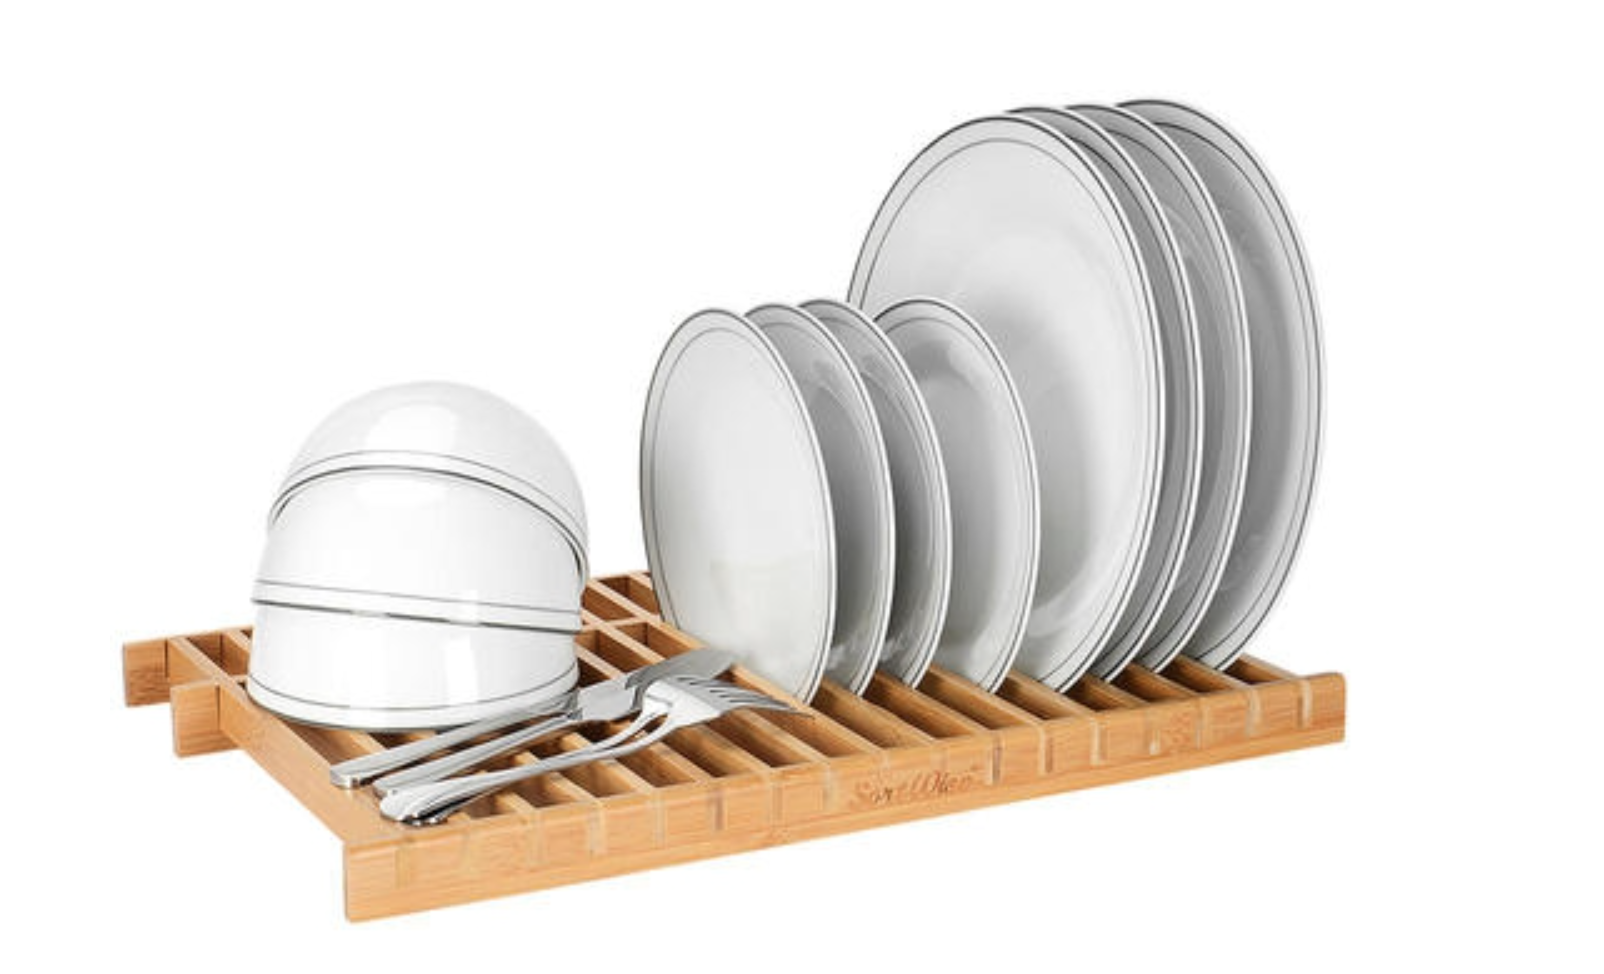 image of a bamboo dish rack holding dishes